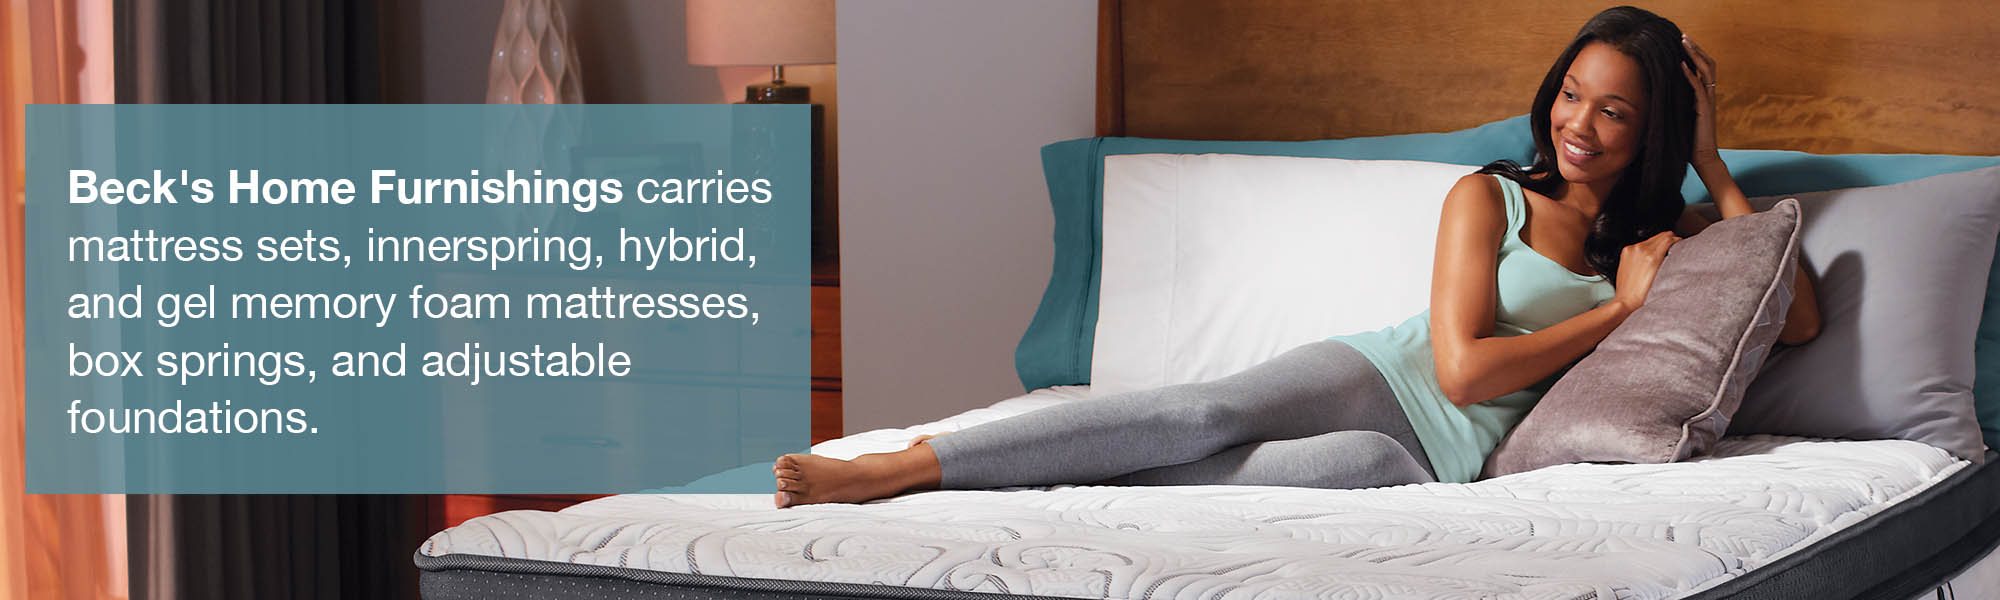 Beck's Mattress Web Banner